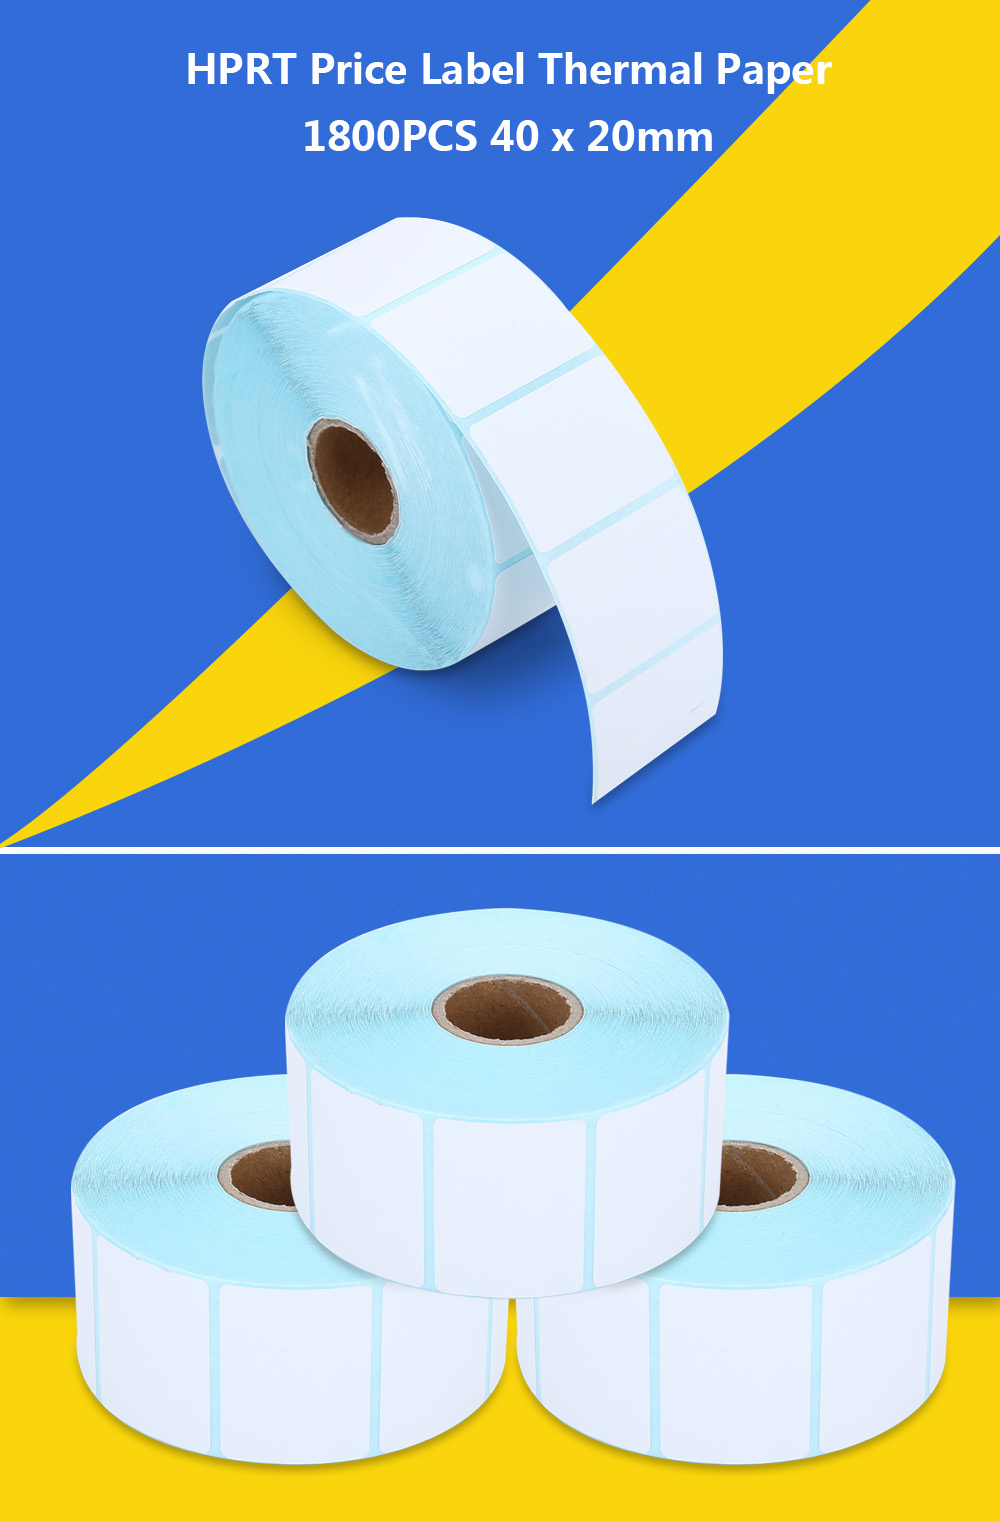 Buy now to avoid global thermal paper shortage